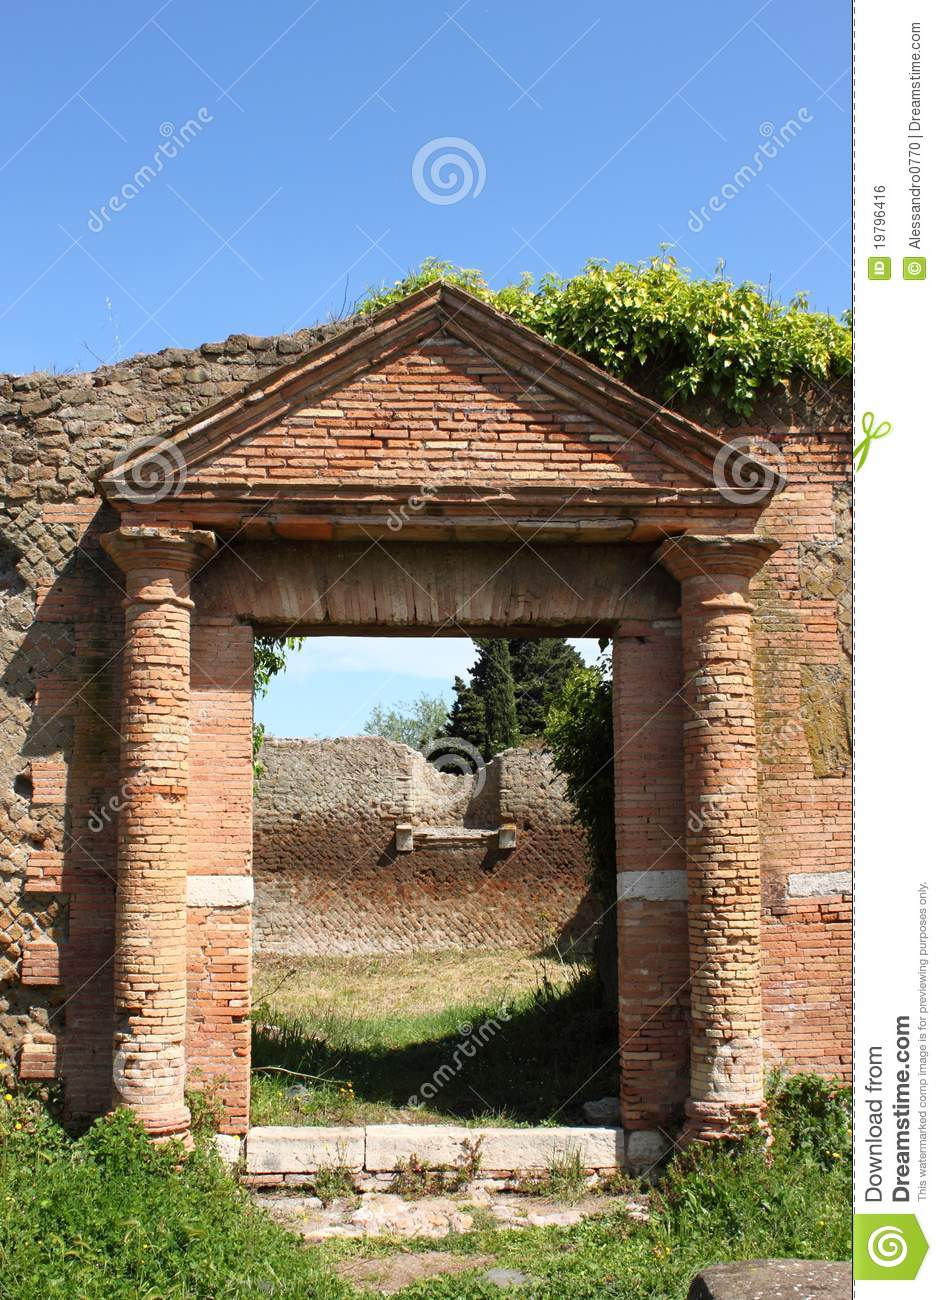 Entrance Of An Old Roman House Royalty Free Stock Image ...